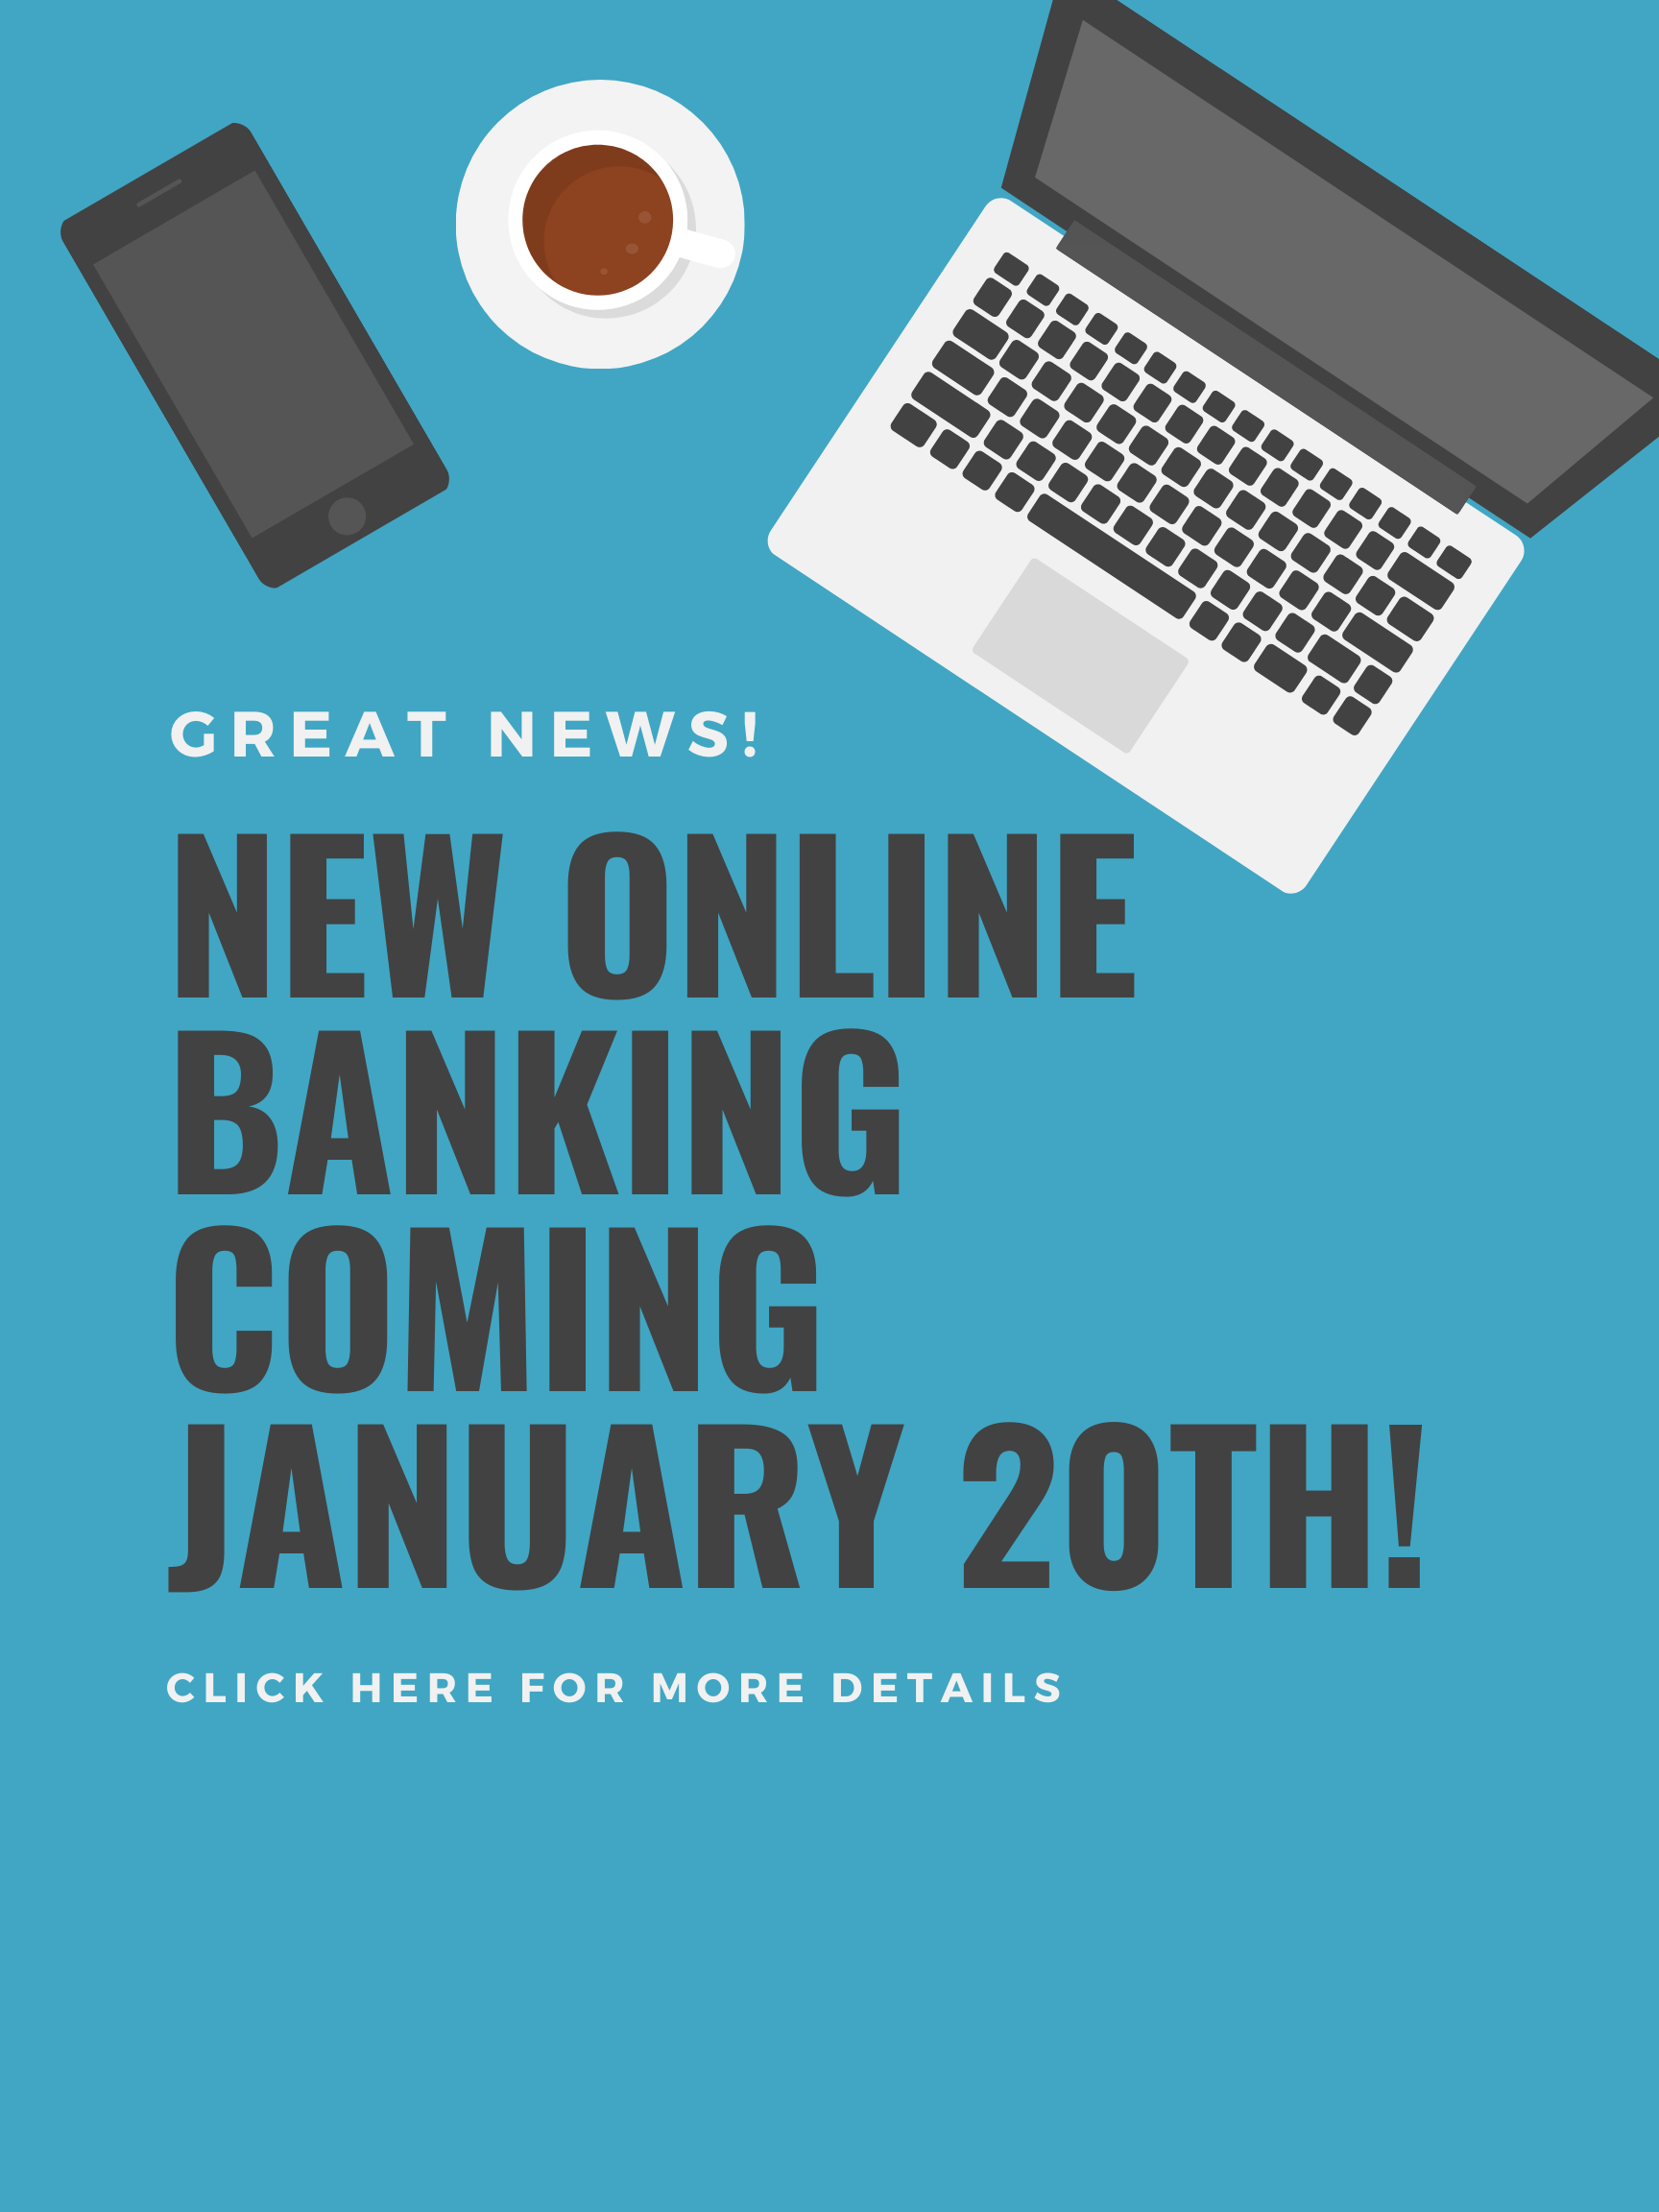 great news! new online banking coming january 20! click here for more details